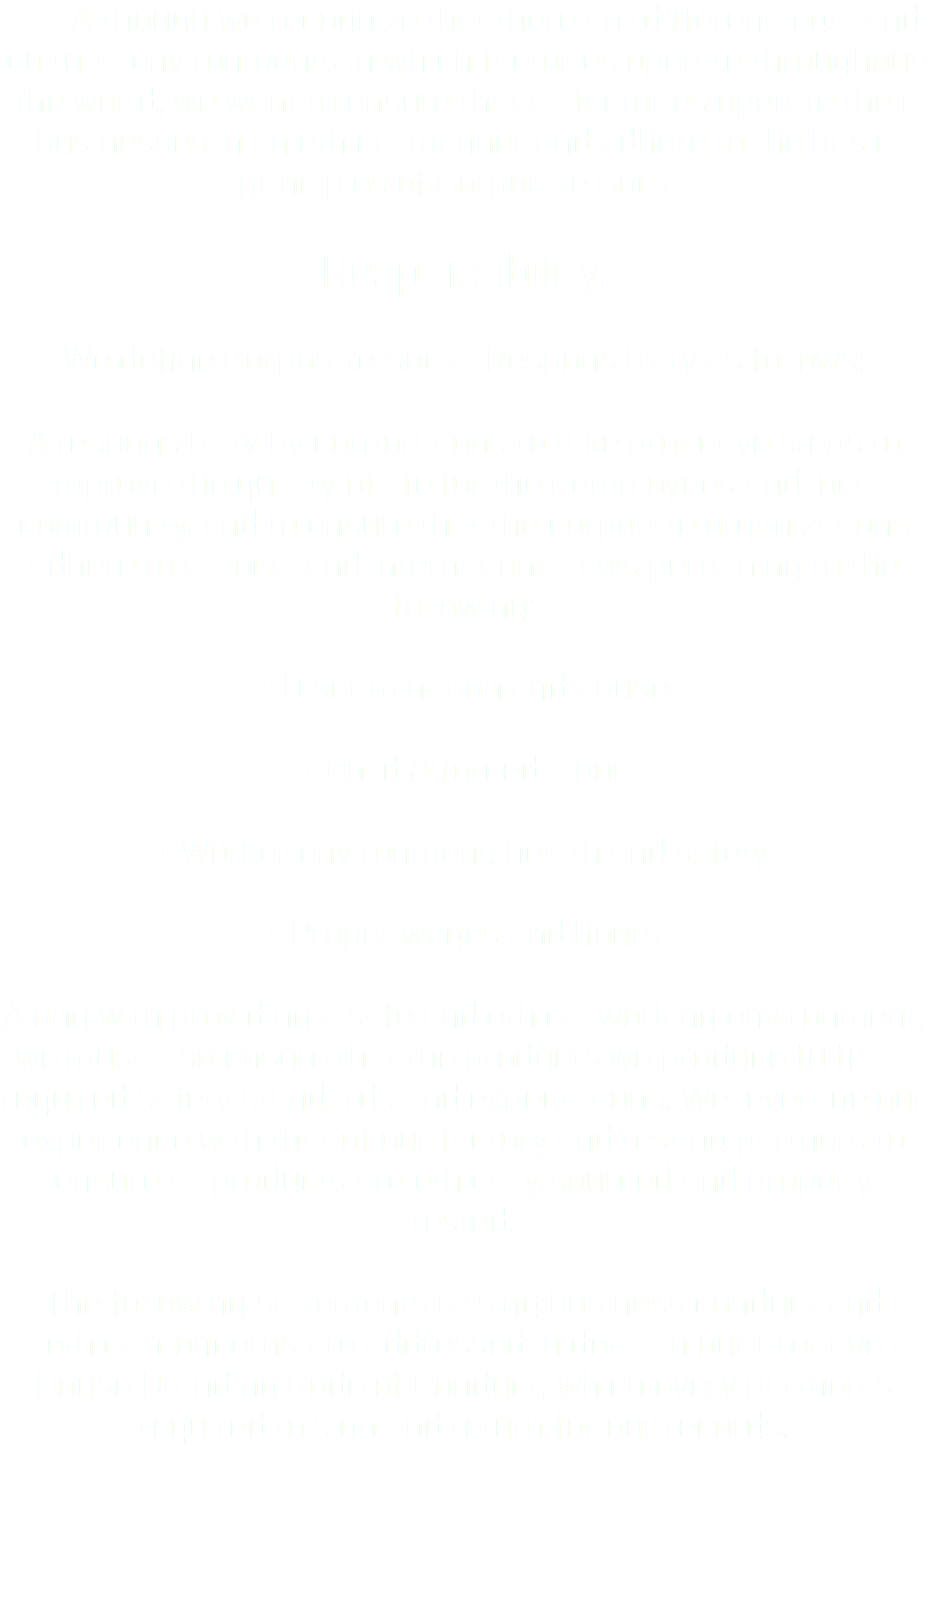 Although we recognize that there are different legal and cultural environments in which factories operate throughout the world, we want to ensure that all factories operate their businesses in an ethical manner and adhere to the basic principles of Corporate Social Responsibility. We define Corporate Social Responsibility as follows: A responsibility by corporations to take proactive steps to improve the quality of life for their employees and local community, and to ensure that the corporate organizations adhere to all local and international laws pertaining to the following: • Discrimination and abuse • Child & forced labor • Worker environment, health and safety • Proper wages and hours Along with providing a safe and ethical working environment, we must also ensure that the products we produce fulfill all required safety standards and expectations. We leverage our experience with that of our factory and testing partners to ensure all products are ethically sourced and properly tested. The following statements raising business conduct and ethical concerns are addressed in detail in our Creative House Branding Code of Conduct, which every partner is required to sign and return for our records.